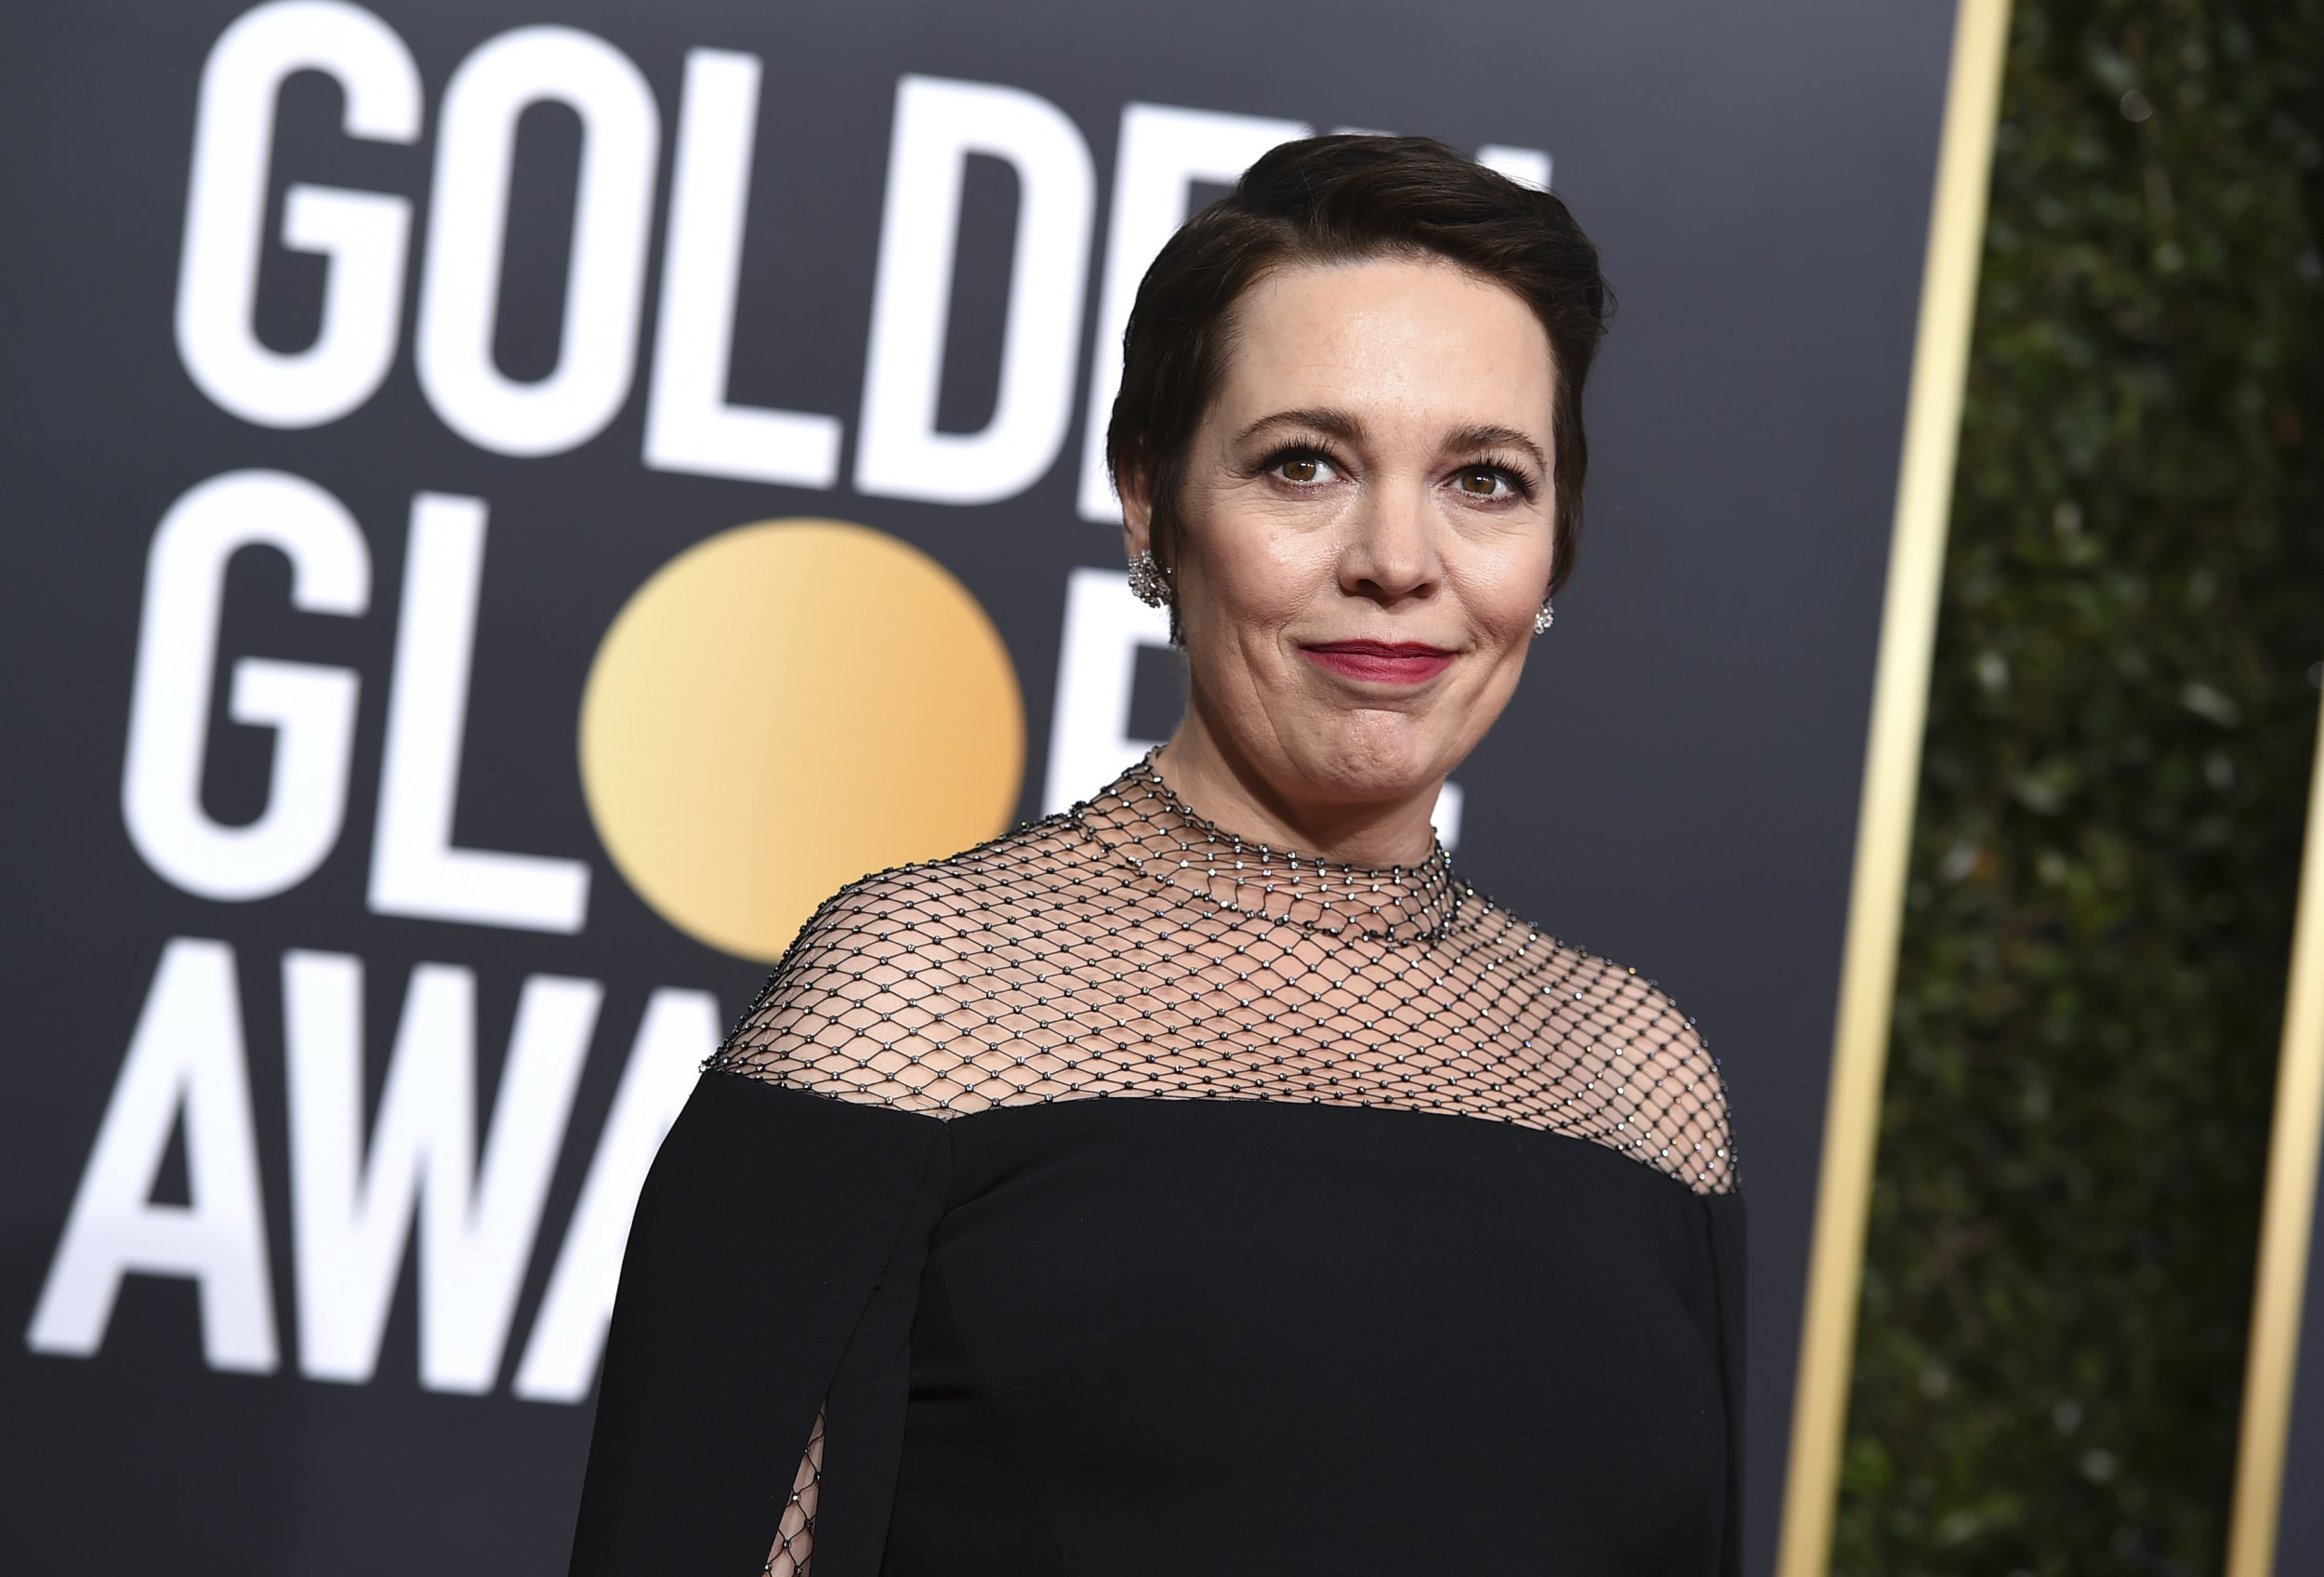 Olivia Colman arrives at the 76th annual Golden Globe Awards at the Beverly Hilton Hotel on Sunday, Jan. 6, 2019, in Beverly Hills, Calif. (Photo by Jordan Strauss/Invision/AP)